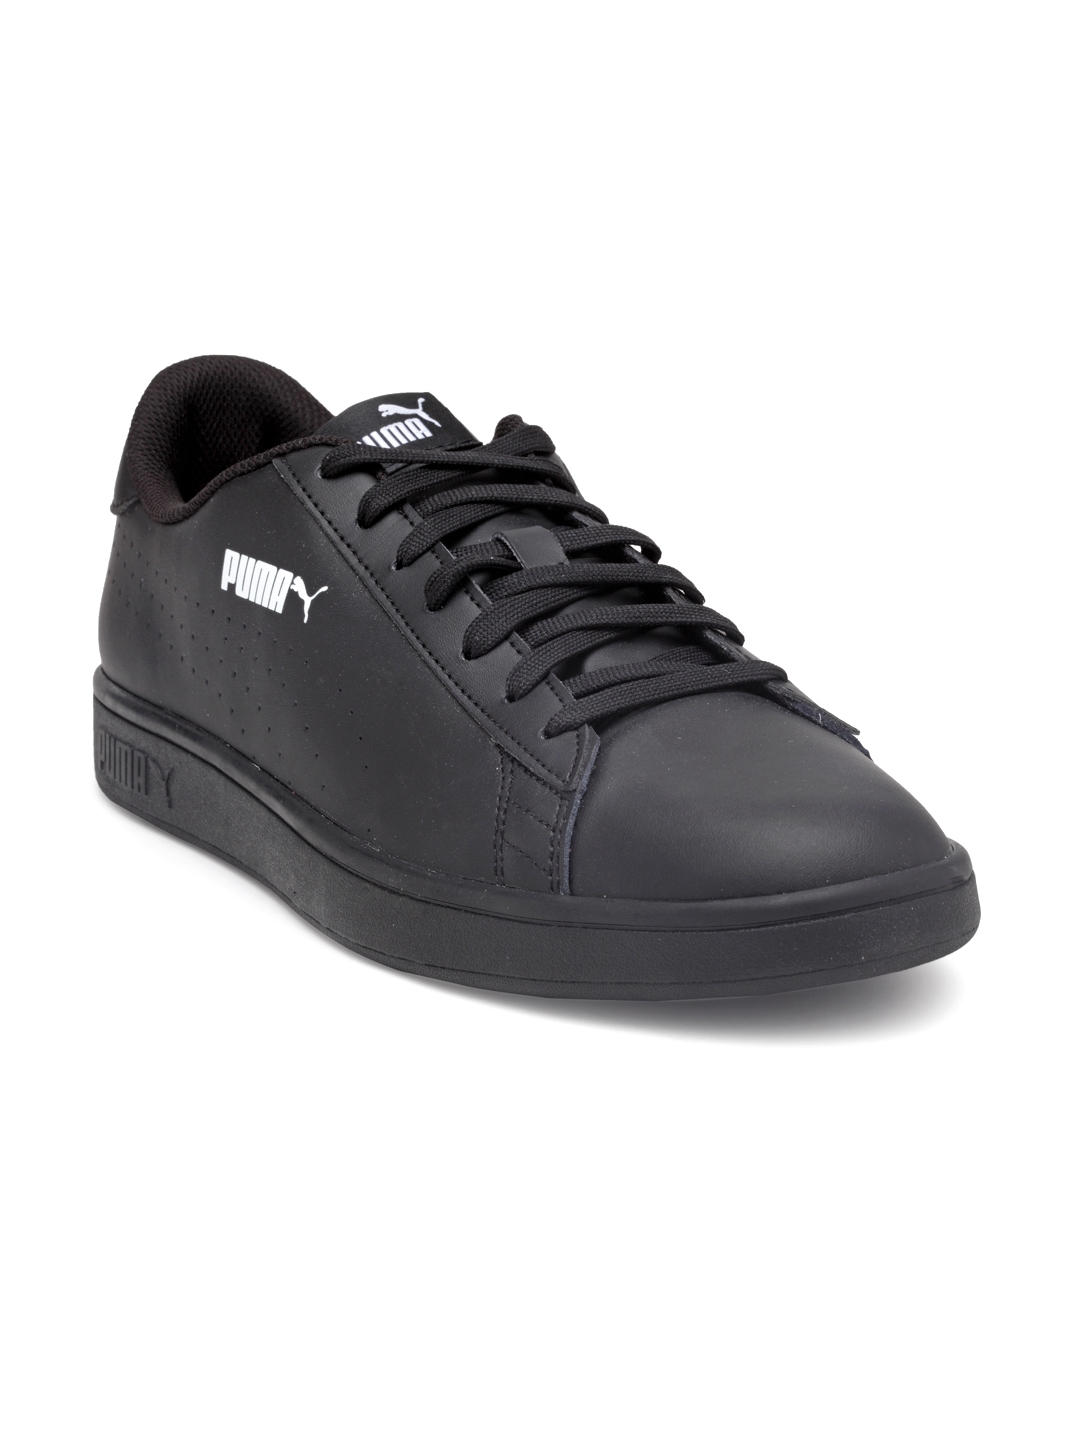 ef9aeec6e92b Buy Puma Men Black Smash V2 L Perf Leather Sneakers - Casual Shoes ...